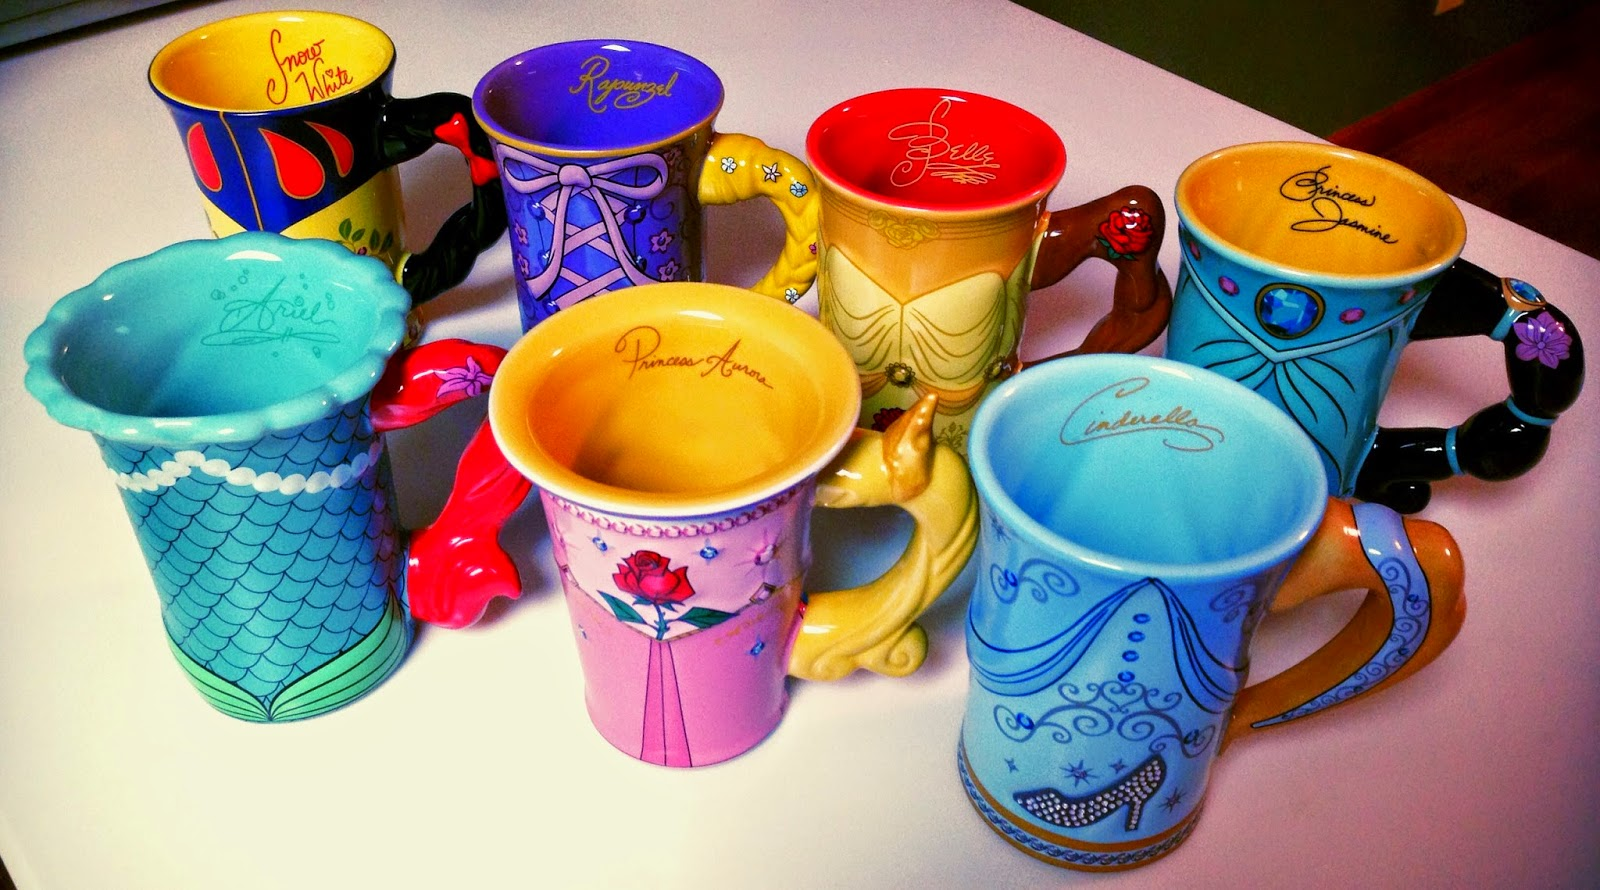 Top 5 Souvenirs To Purchase At The Disneyland Resort